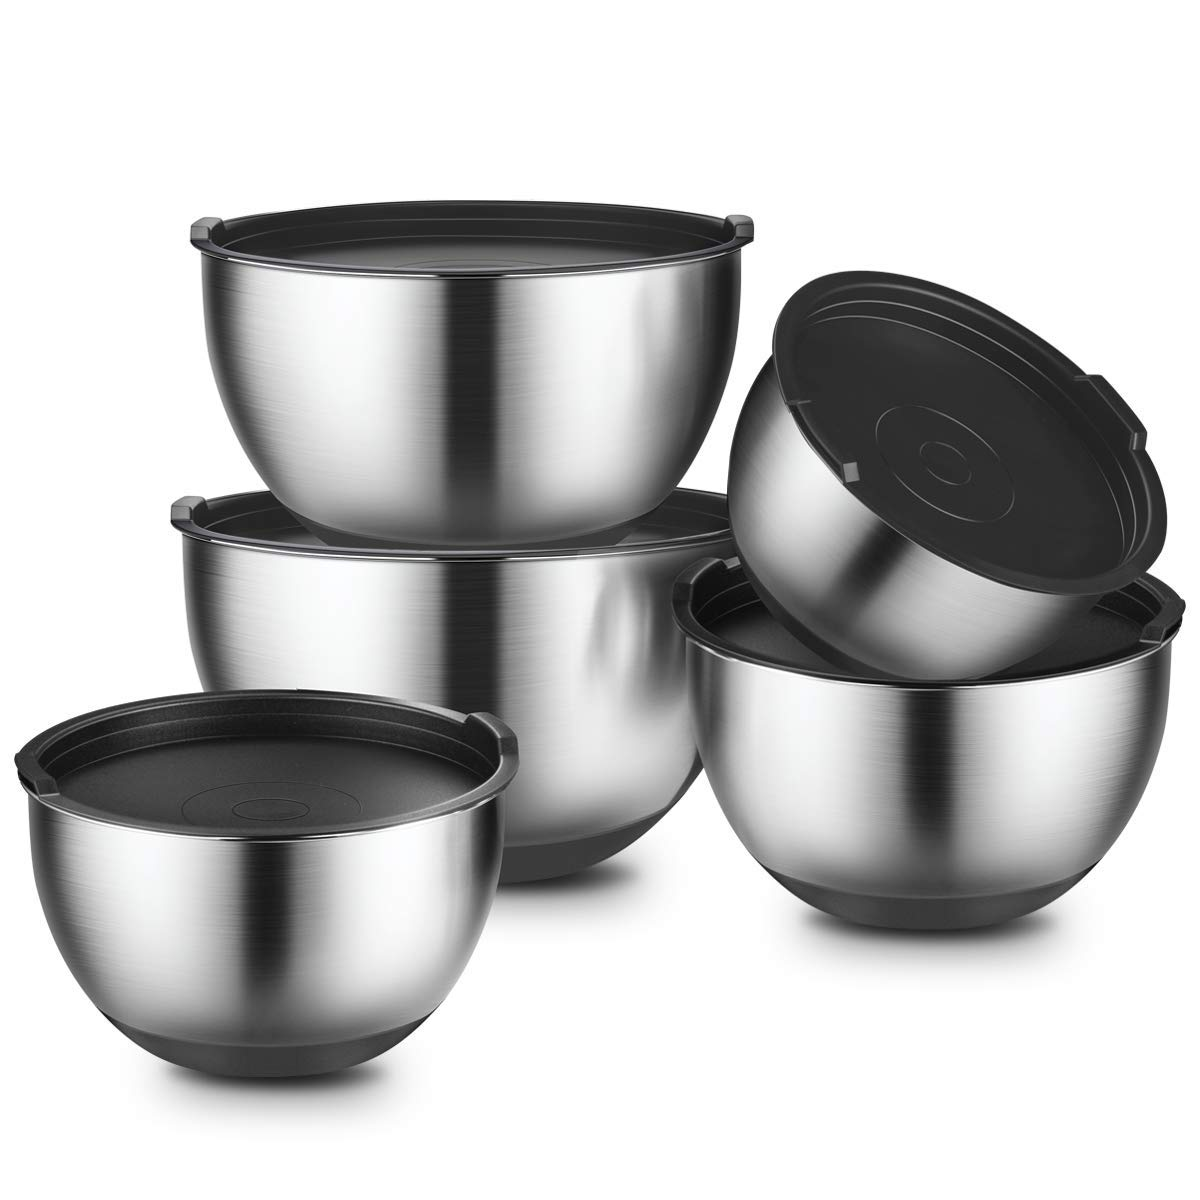 Mixing Bowls With Lids Set of 5, Stainless Steel Mixing Bowls Set with Lids, Non-Slip Silicone Bottom, for Mixing & Beating, Stackable Storage, Set Includes (1, 2, 2.5, 3, 4.5 QT) – By GEEMAY 4.5 QT) – By GEEMAY TB-SB001